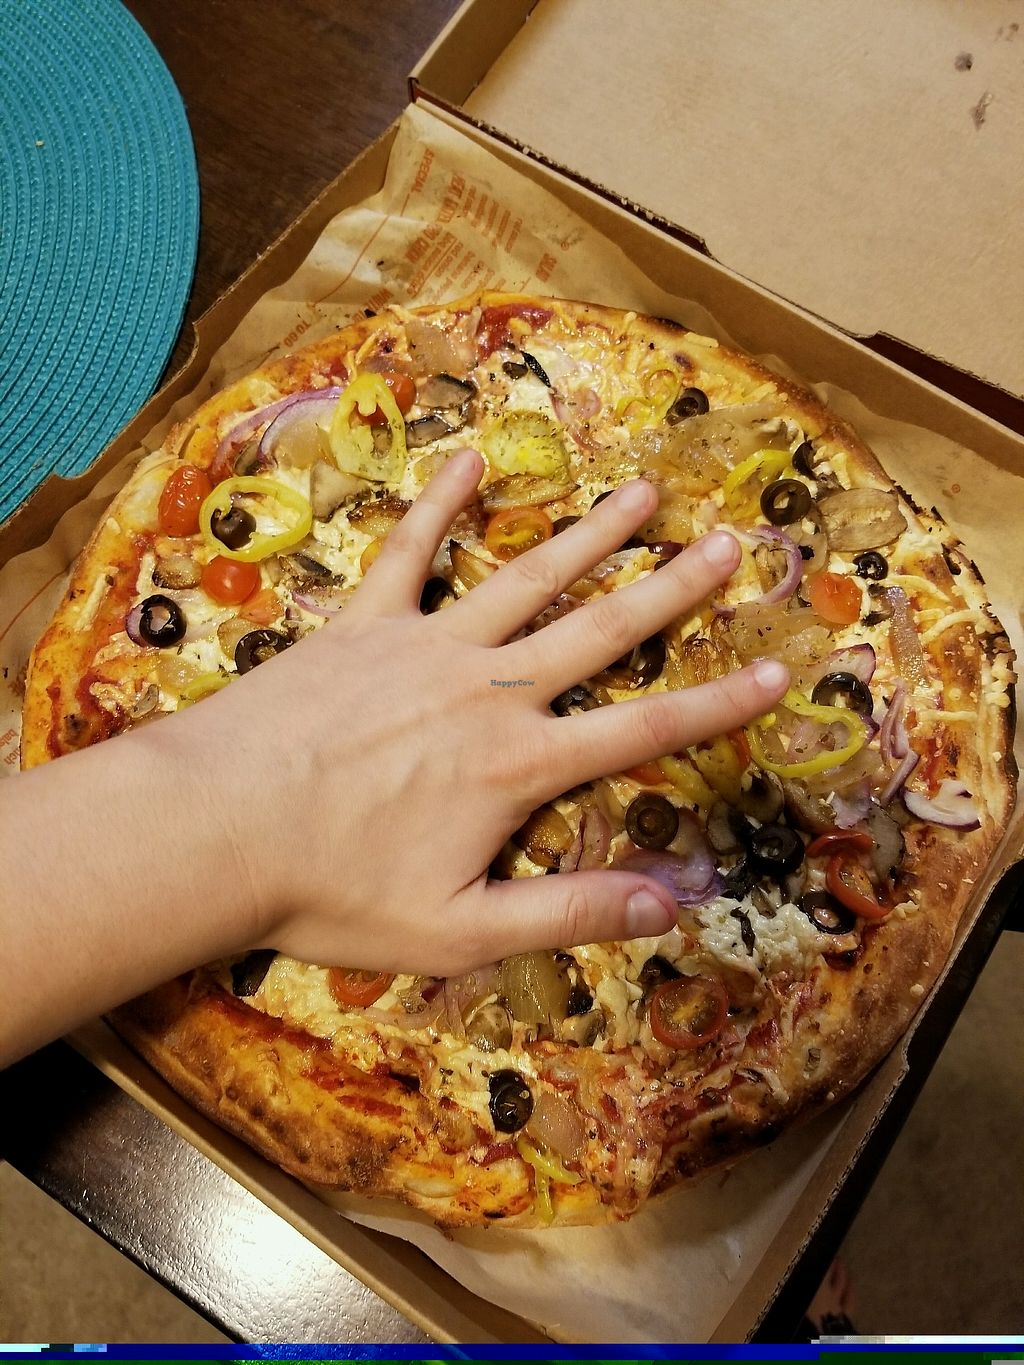 """Photo of Blaze Pizza  by <a href=""""/members/profile/VeganHammy"""">VeganHammy</a> <br/>Hand for scale <br/> November 28, 2017  - <a href='/contact/abuse/image/106105/329931'>Report</a>"""